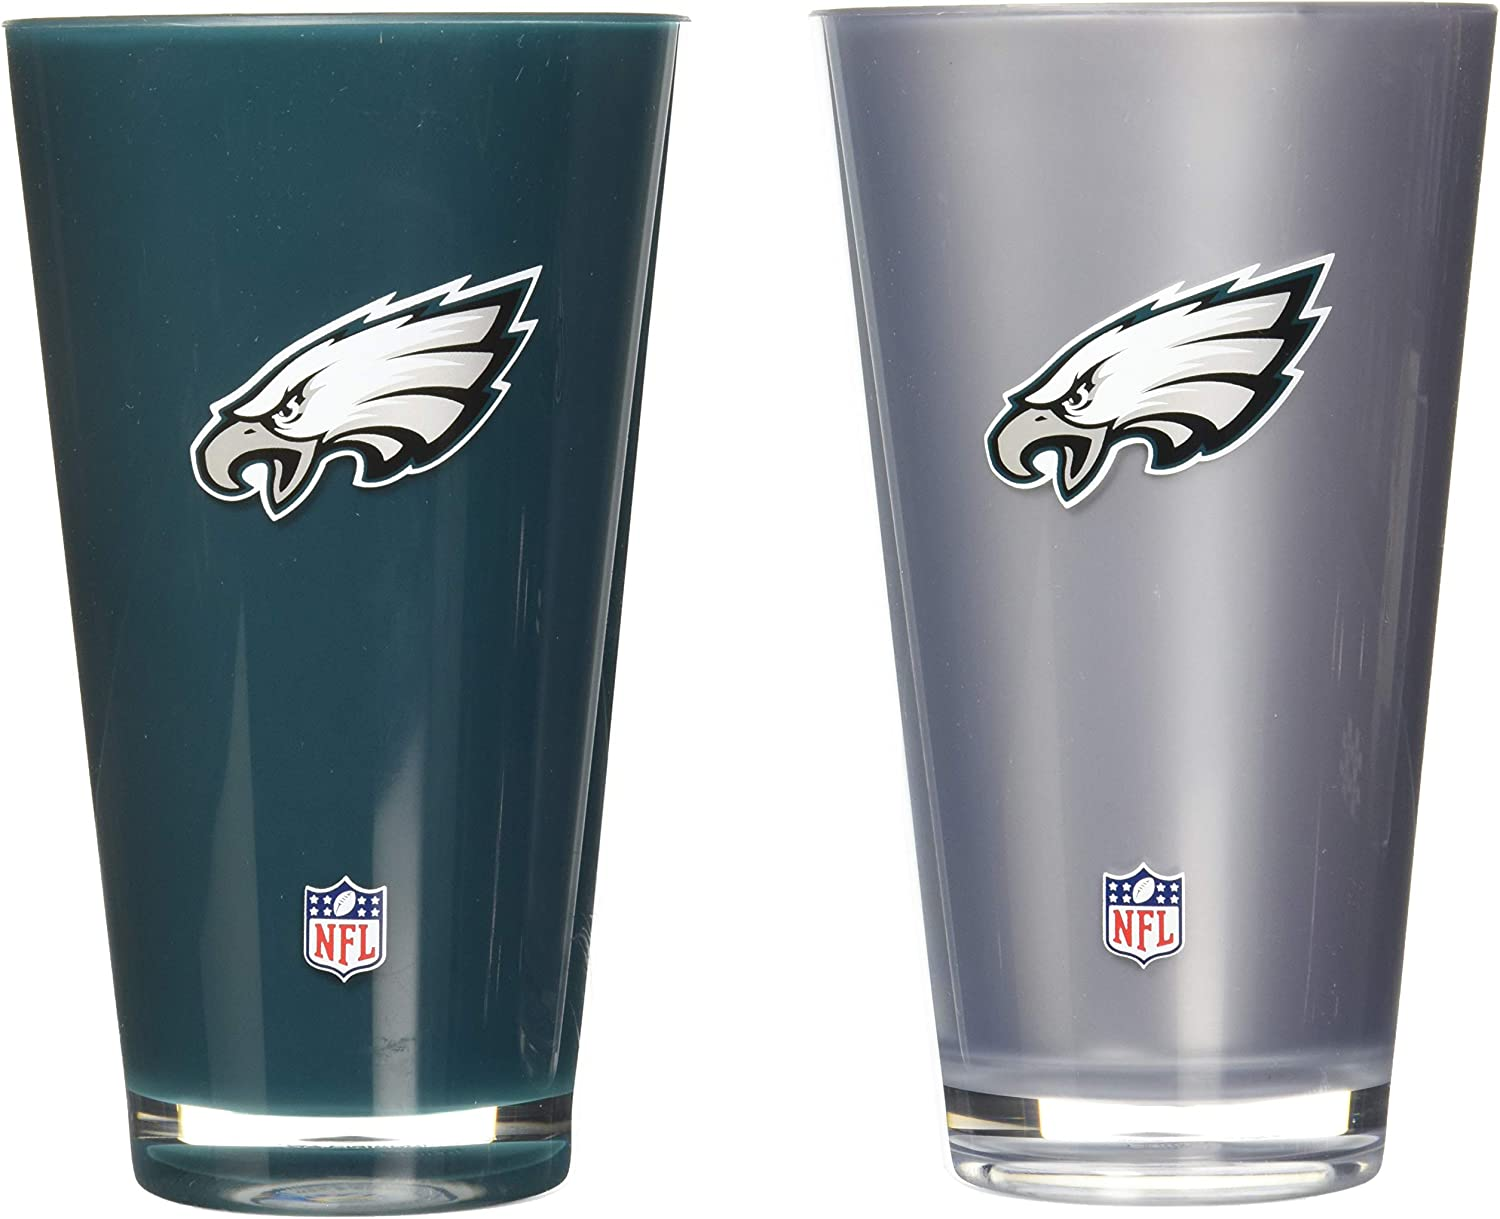 Duck House NFL Insulated Acrylic Tumbler Double-Wall Insulation Weighted Base Shatter-Proof Heat-Resistant BPA-Free 20oz Set of 2